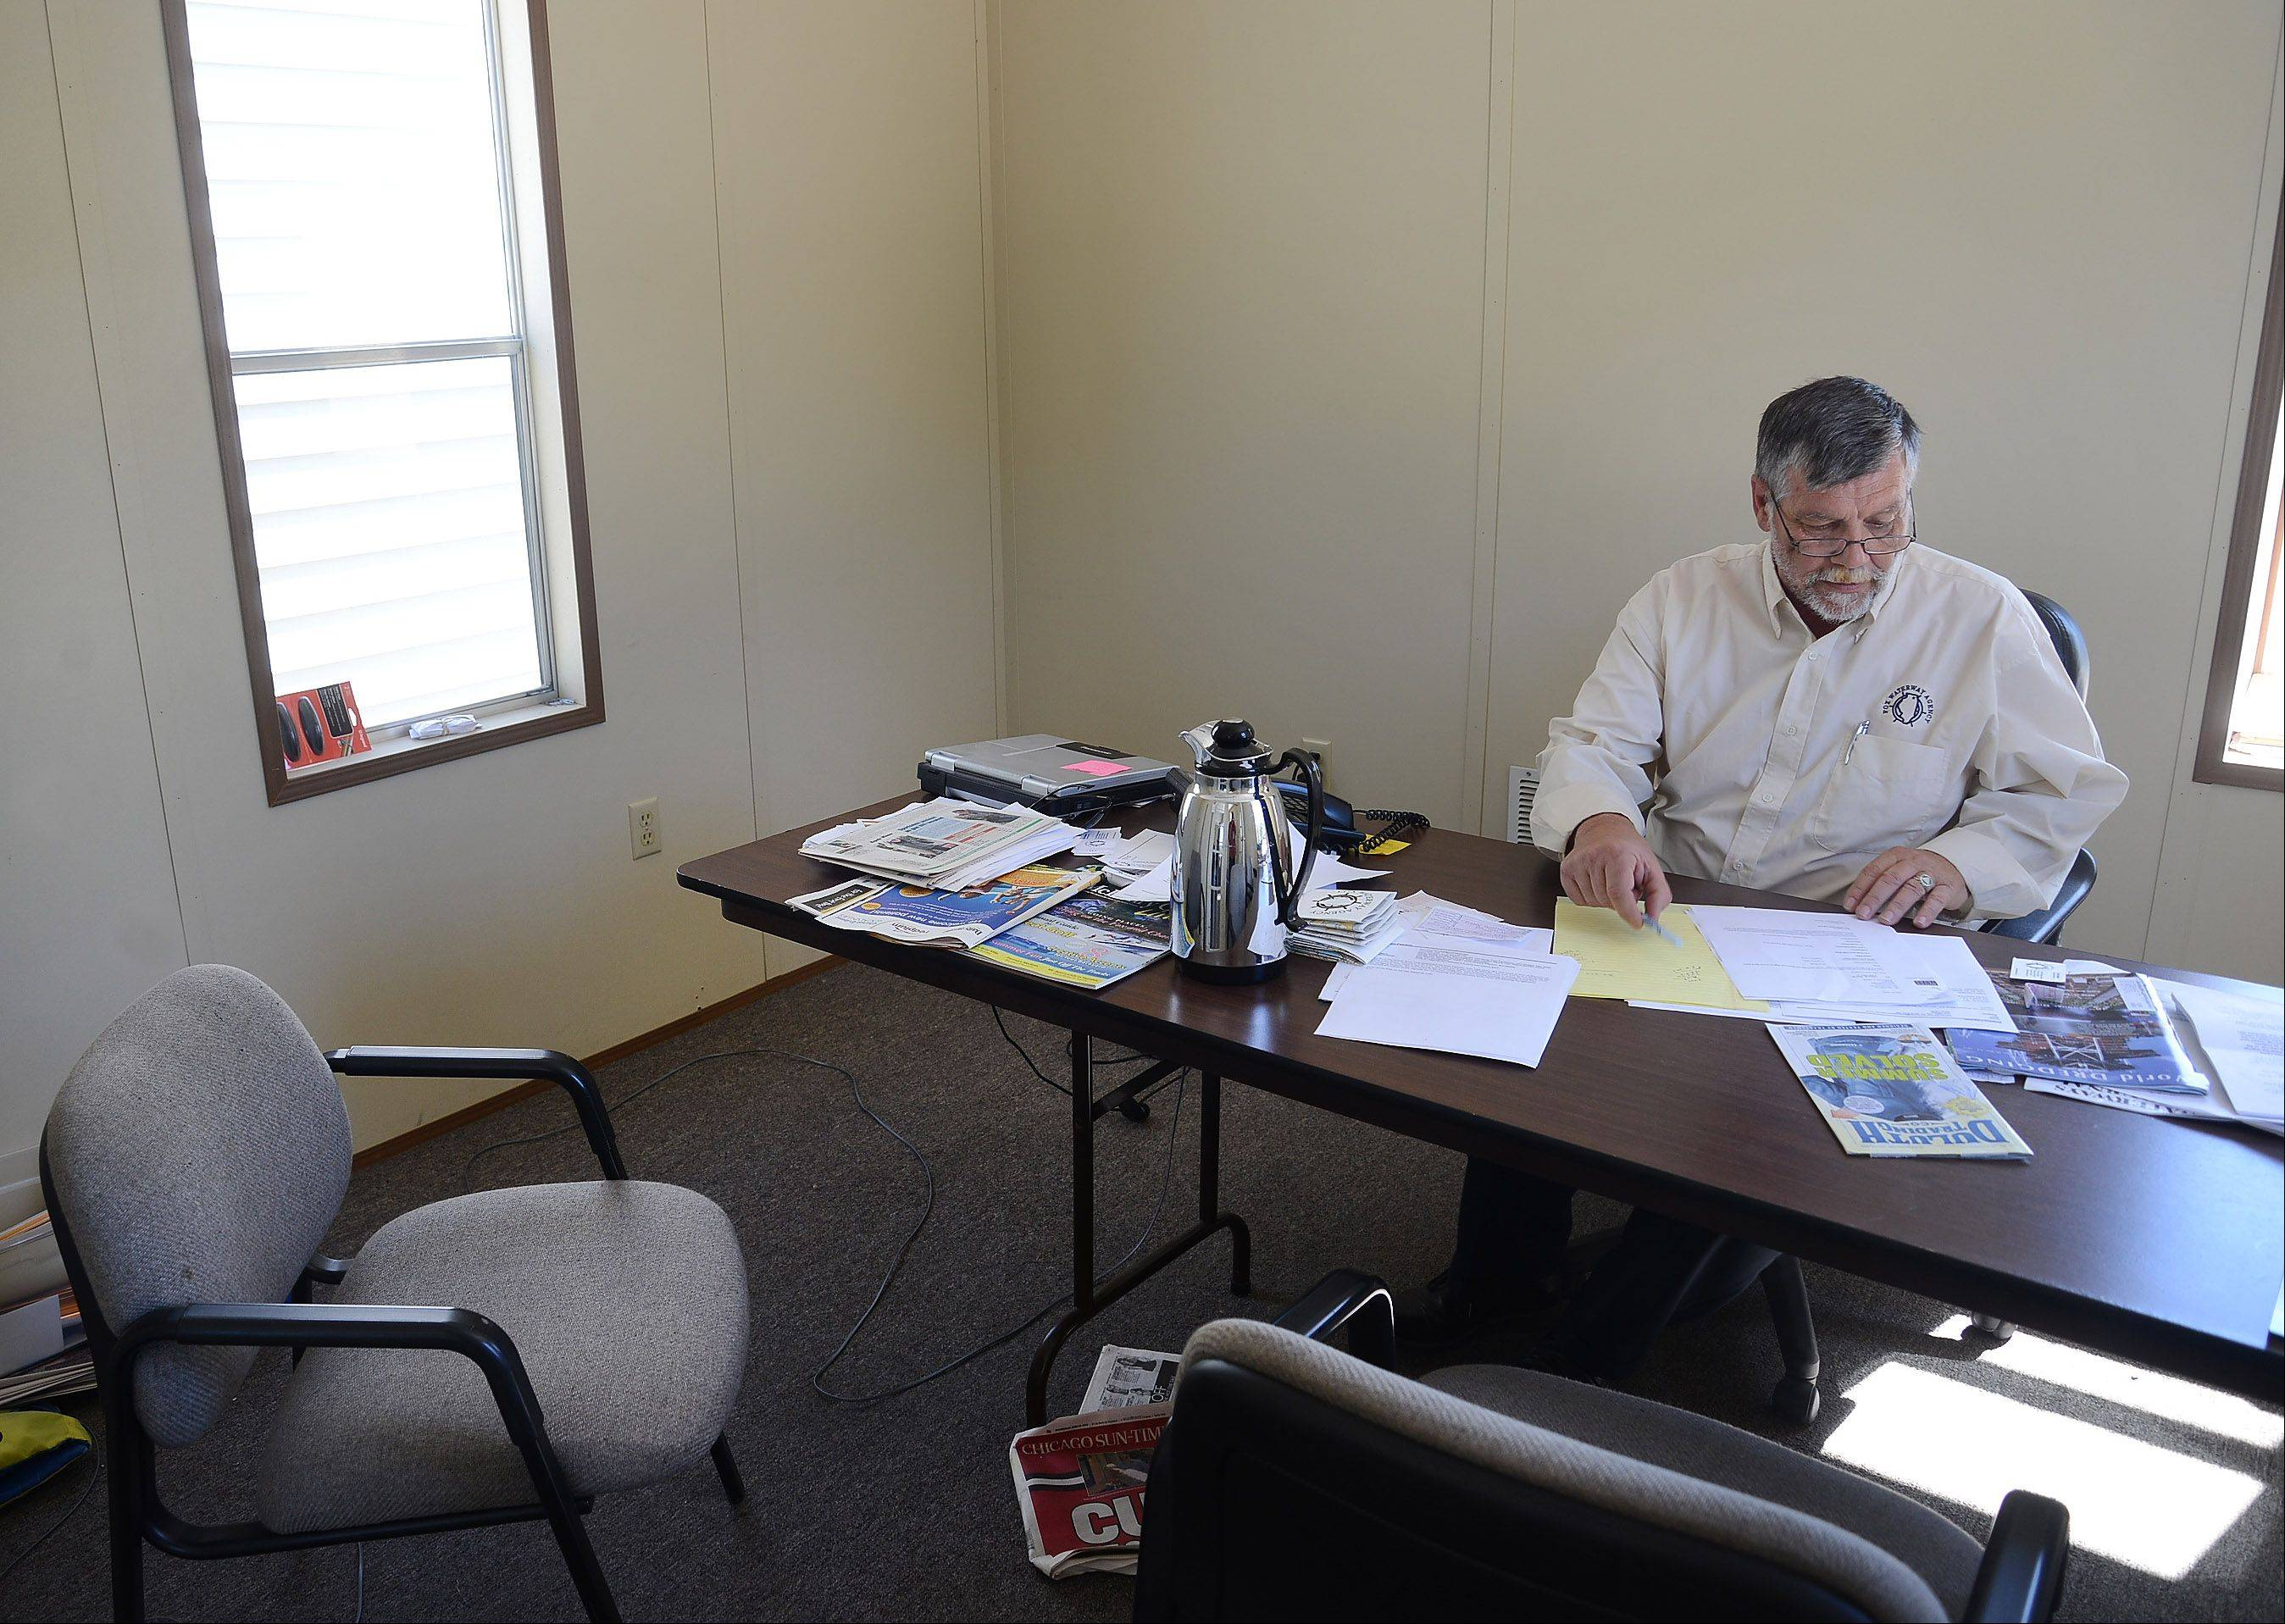 Fox Waterway Agency Executive Director Ron Barker inside his cramped office in the trailer where employees now work while waiting for flood repairs to be made to their office building in Fox Lake.